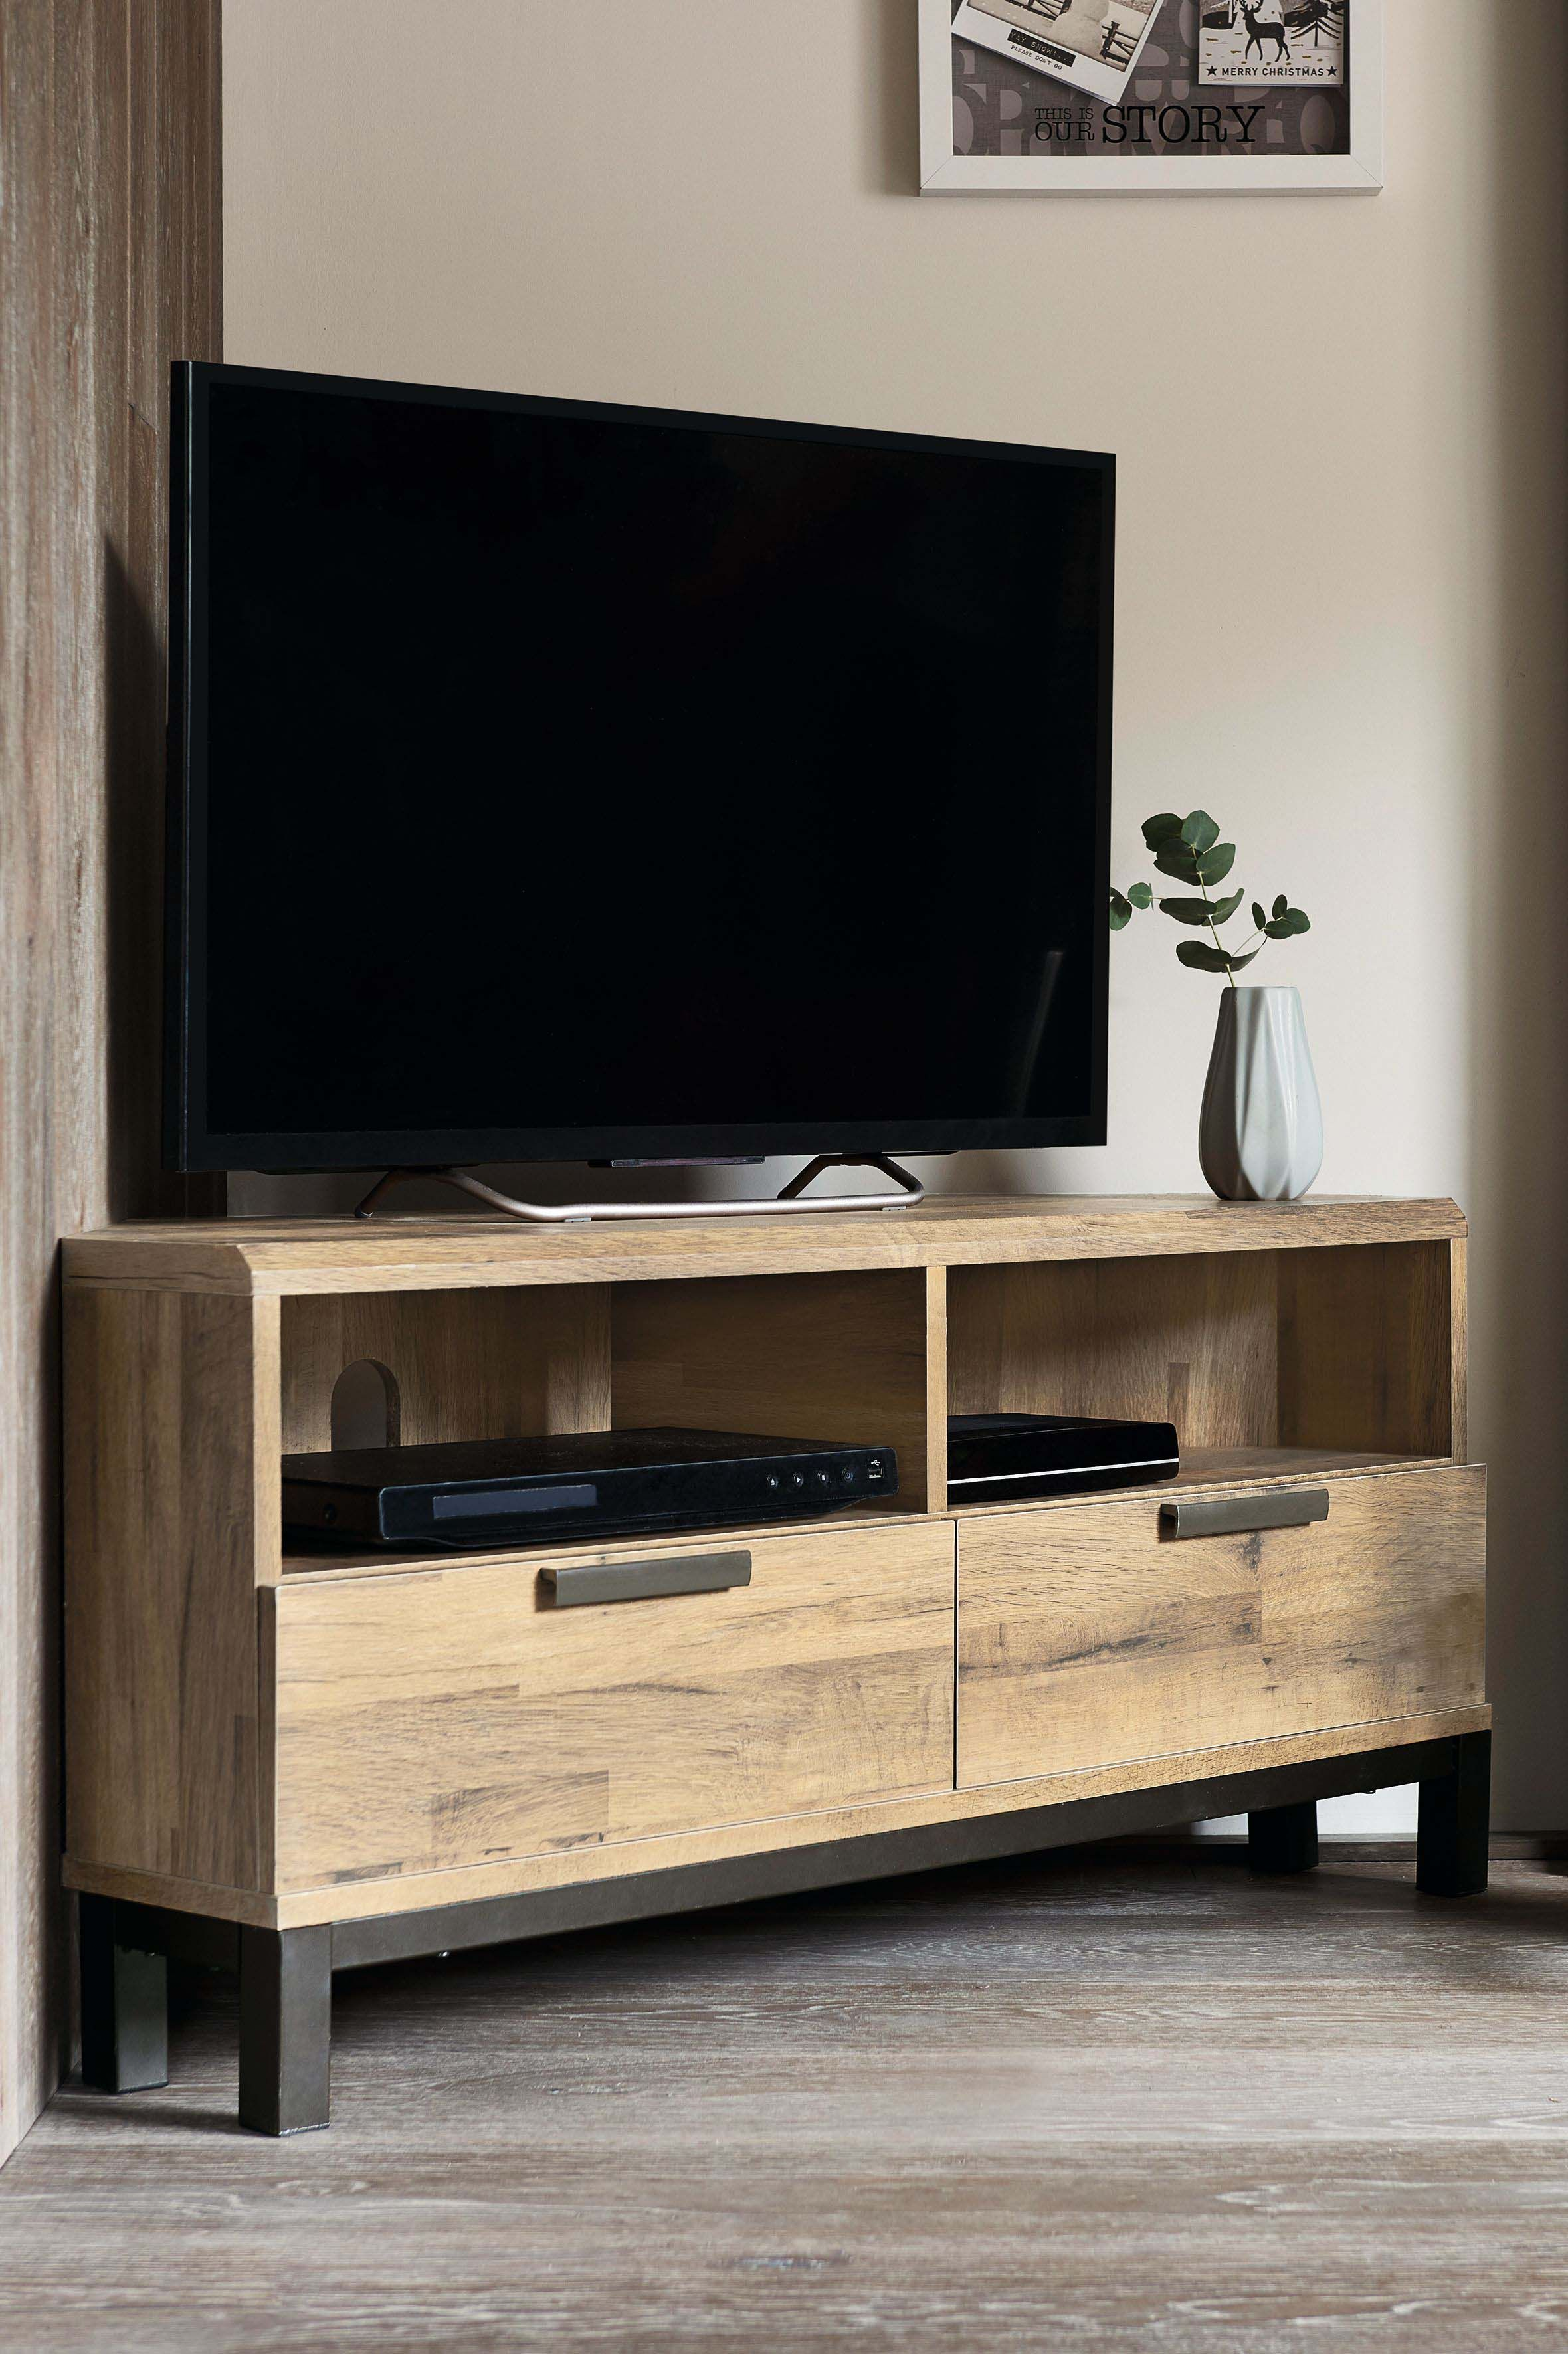 Next Bronx Light Corner Tv Stand Natural Products In 2019